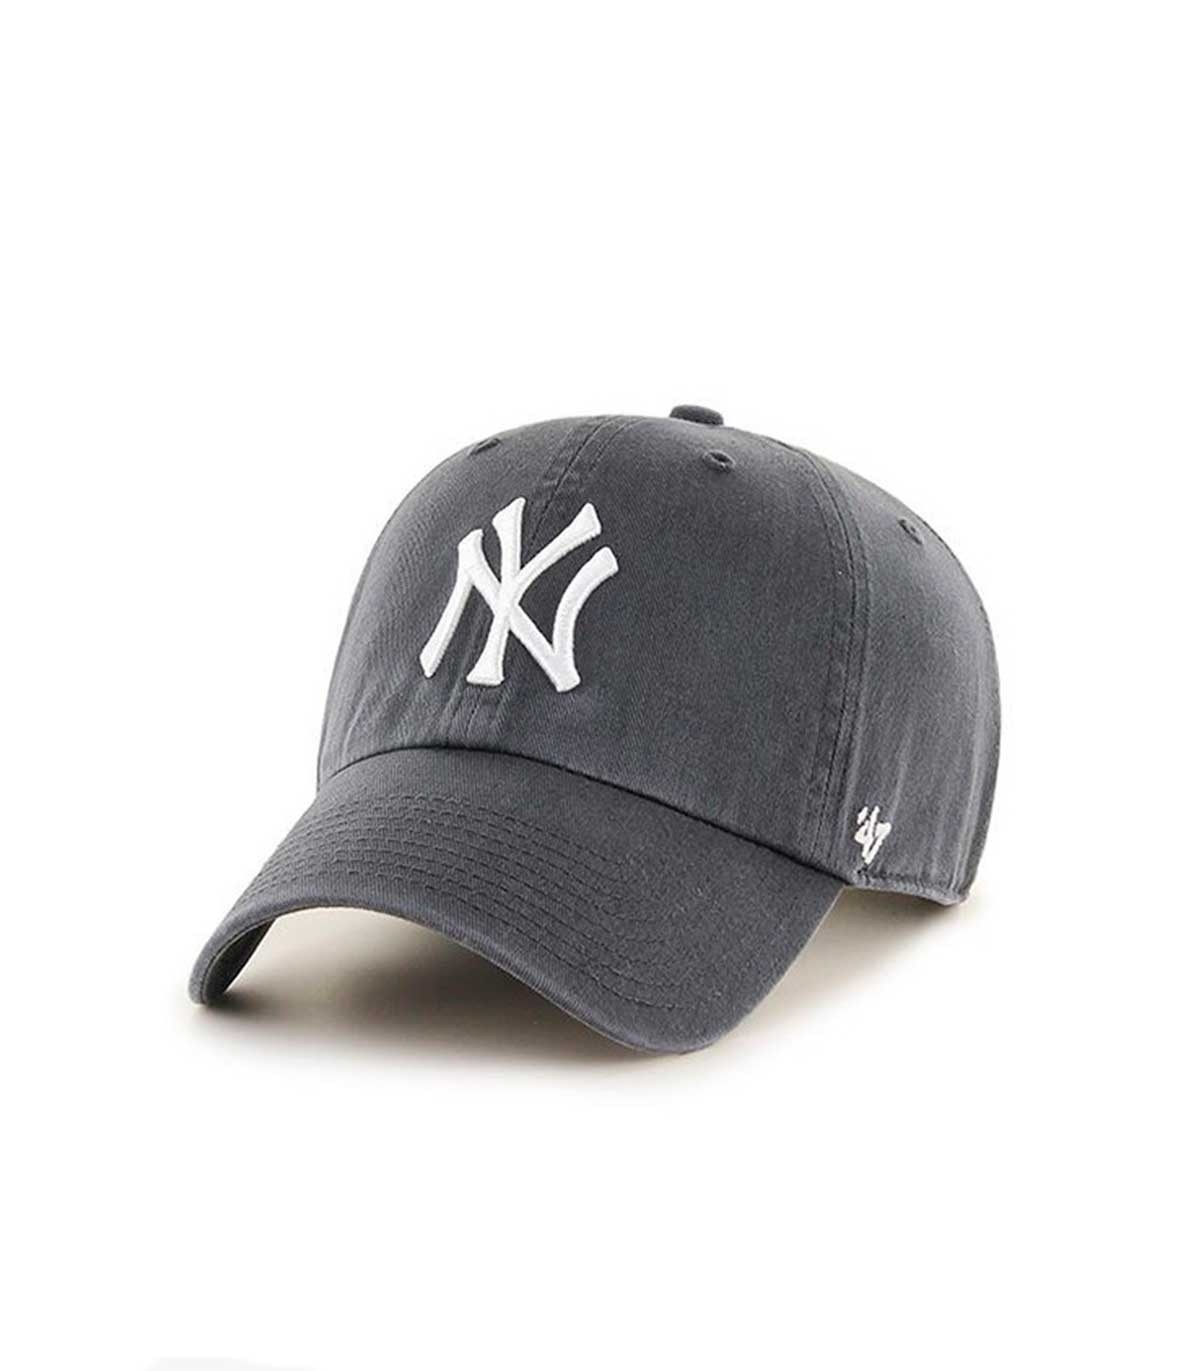 Gorra 47 Brand New York Yankees  59dbbb3436d